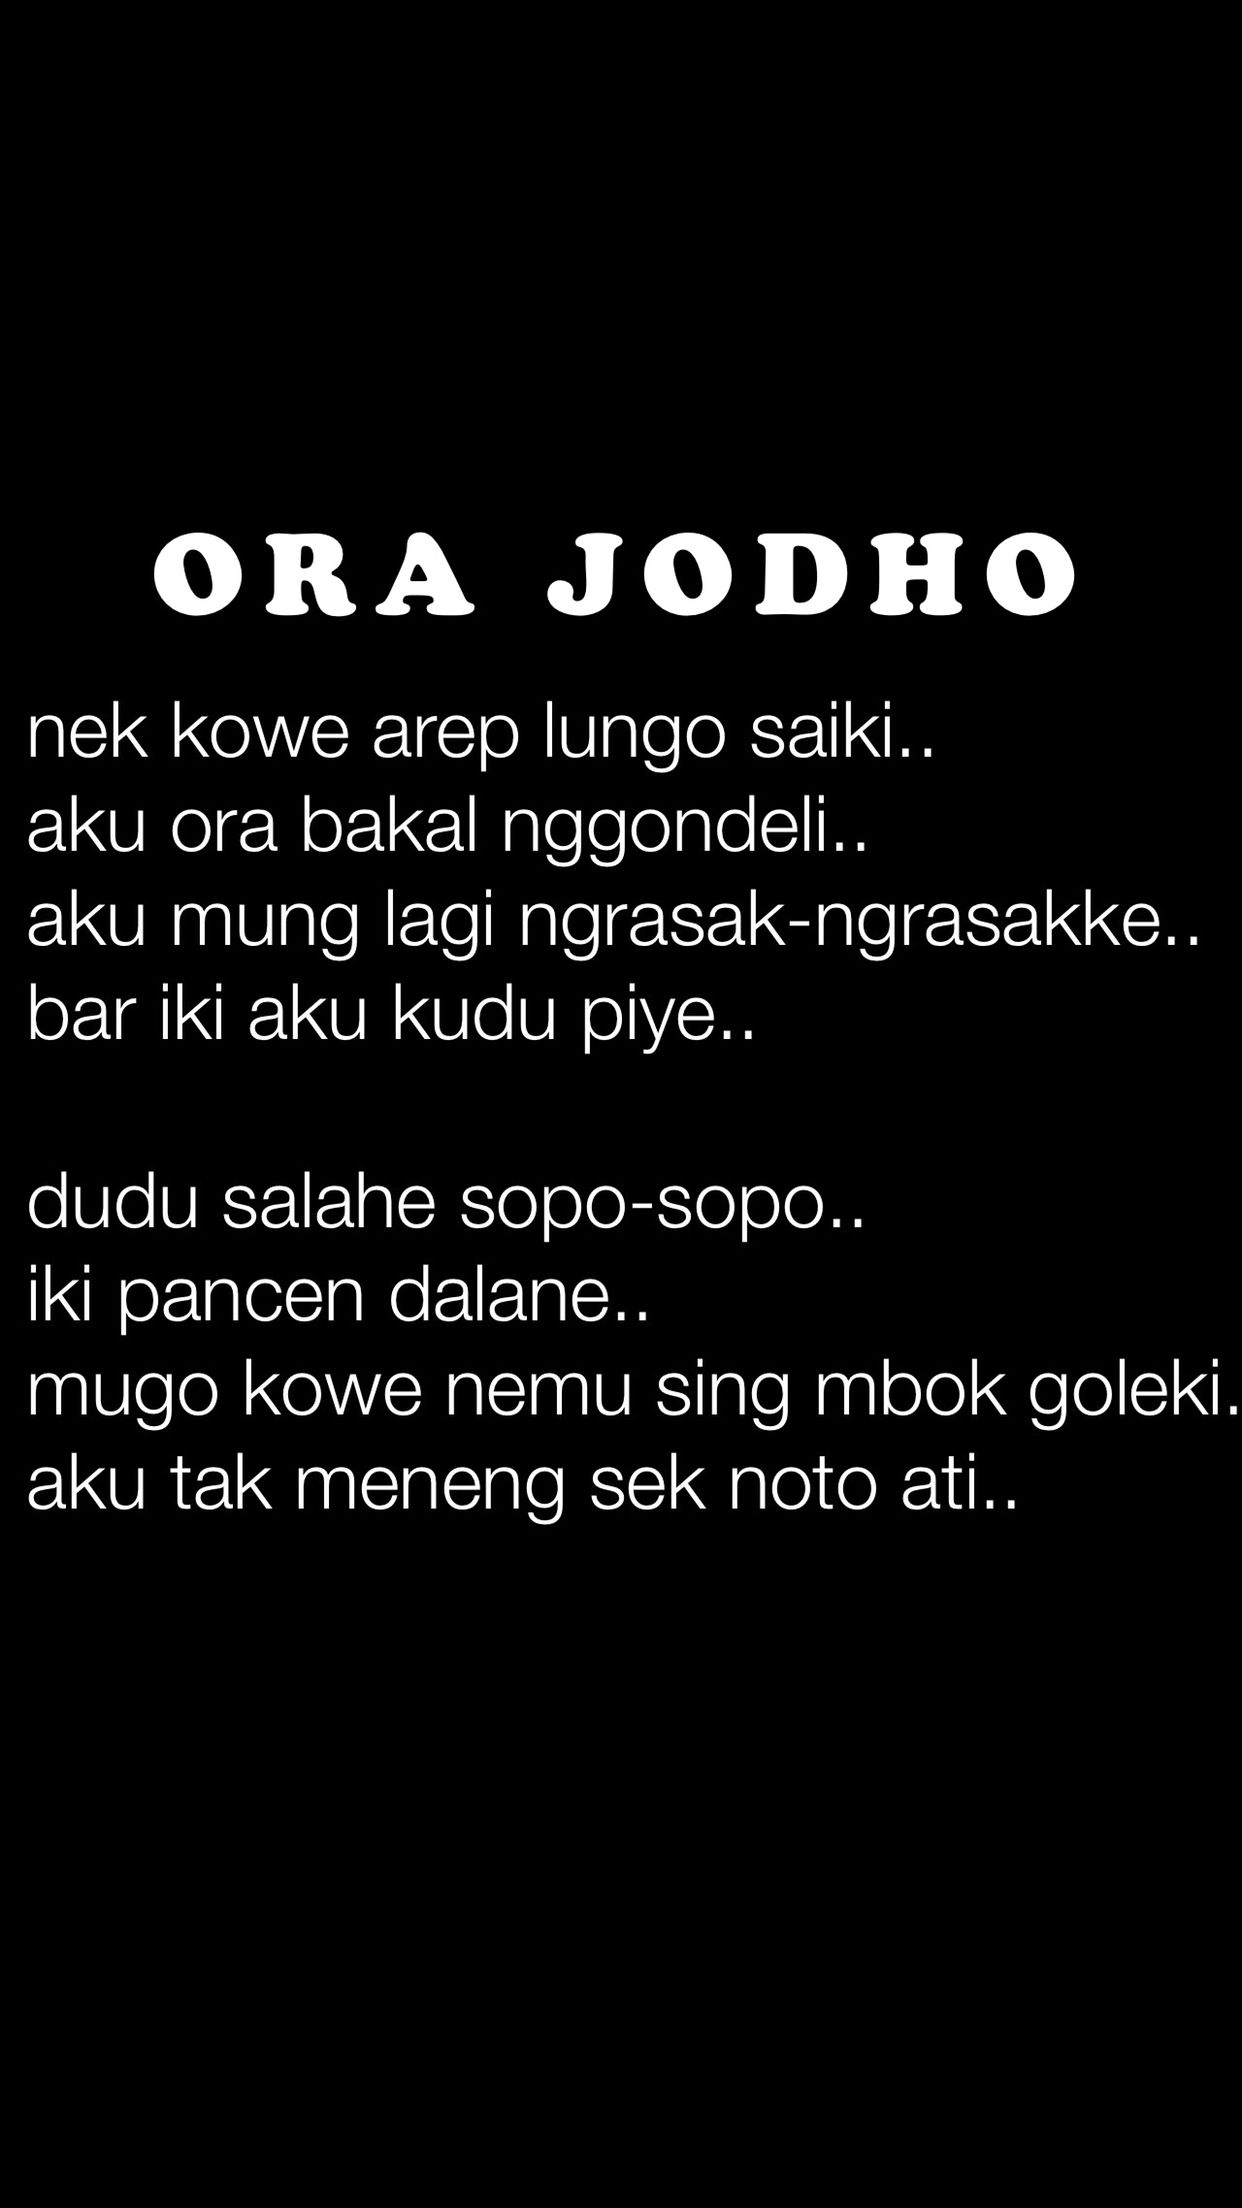 Puisi jawa ora jodho quotes indonesia broken heart quotes positive quotes motivational quotes